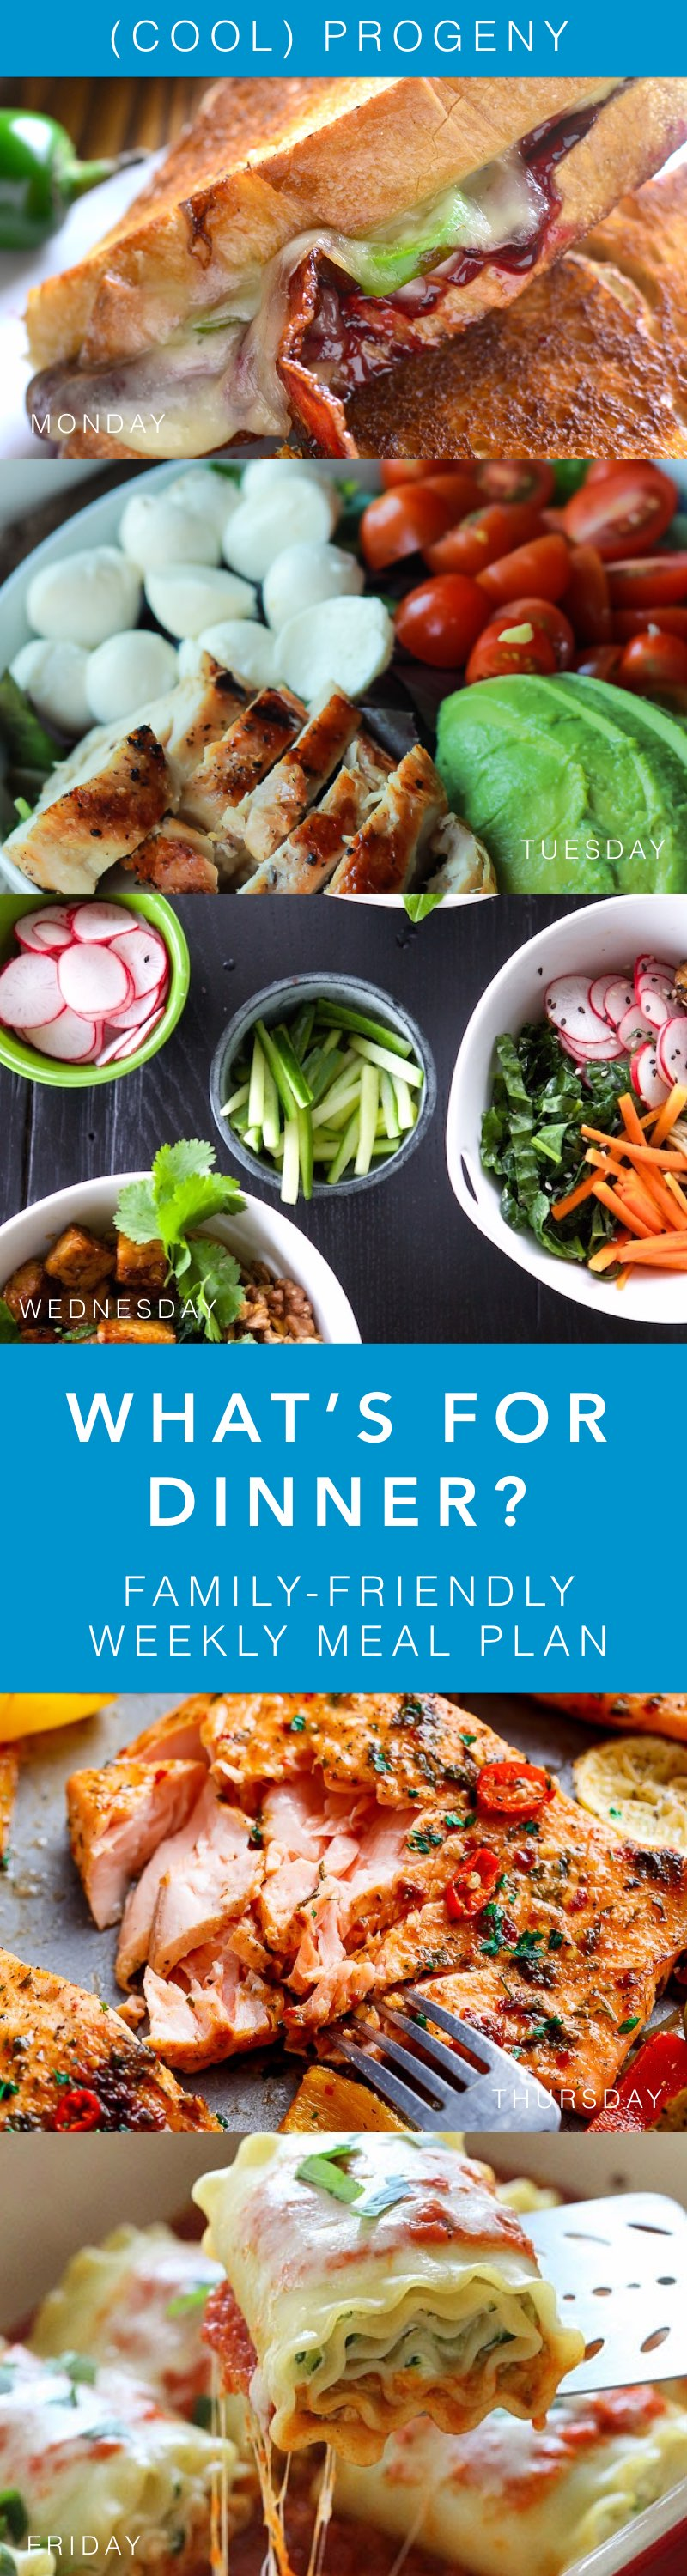 Family Dinners This Week - (cool) progeny